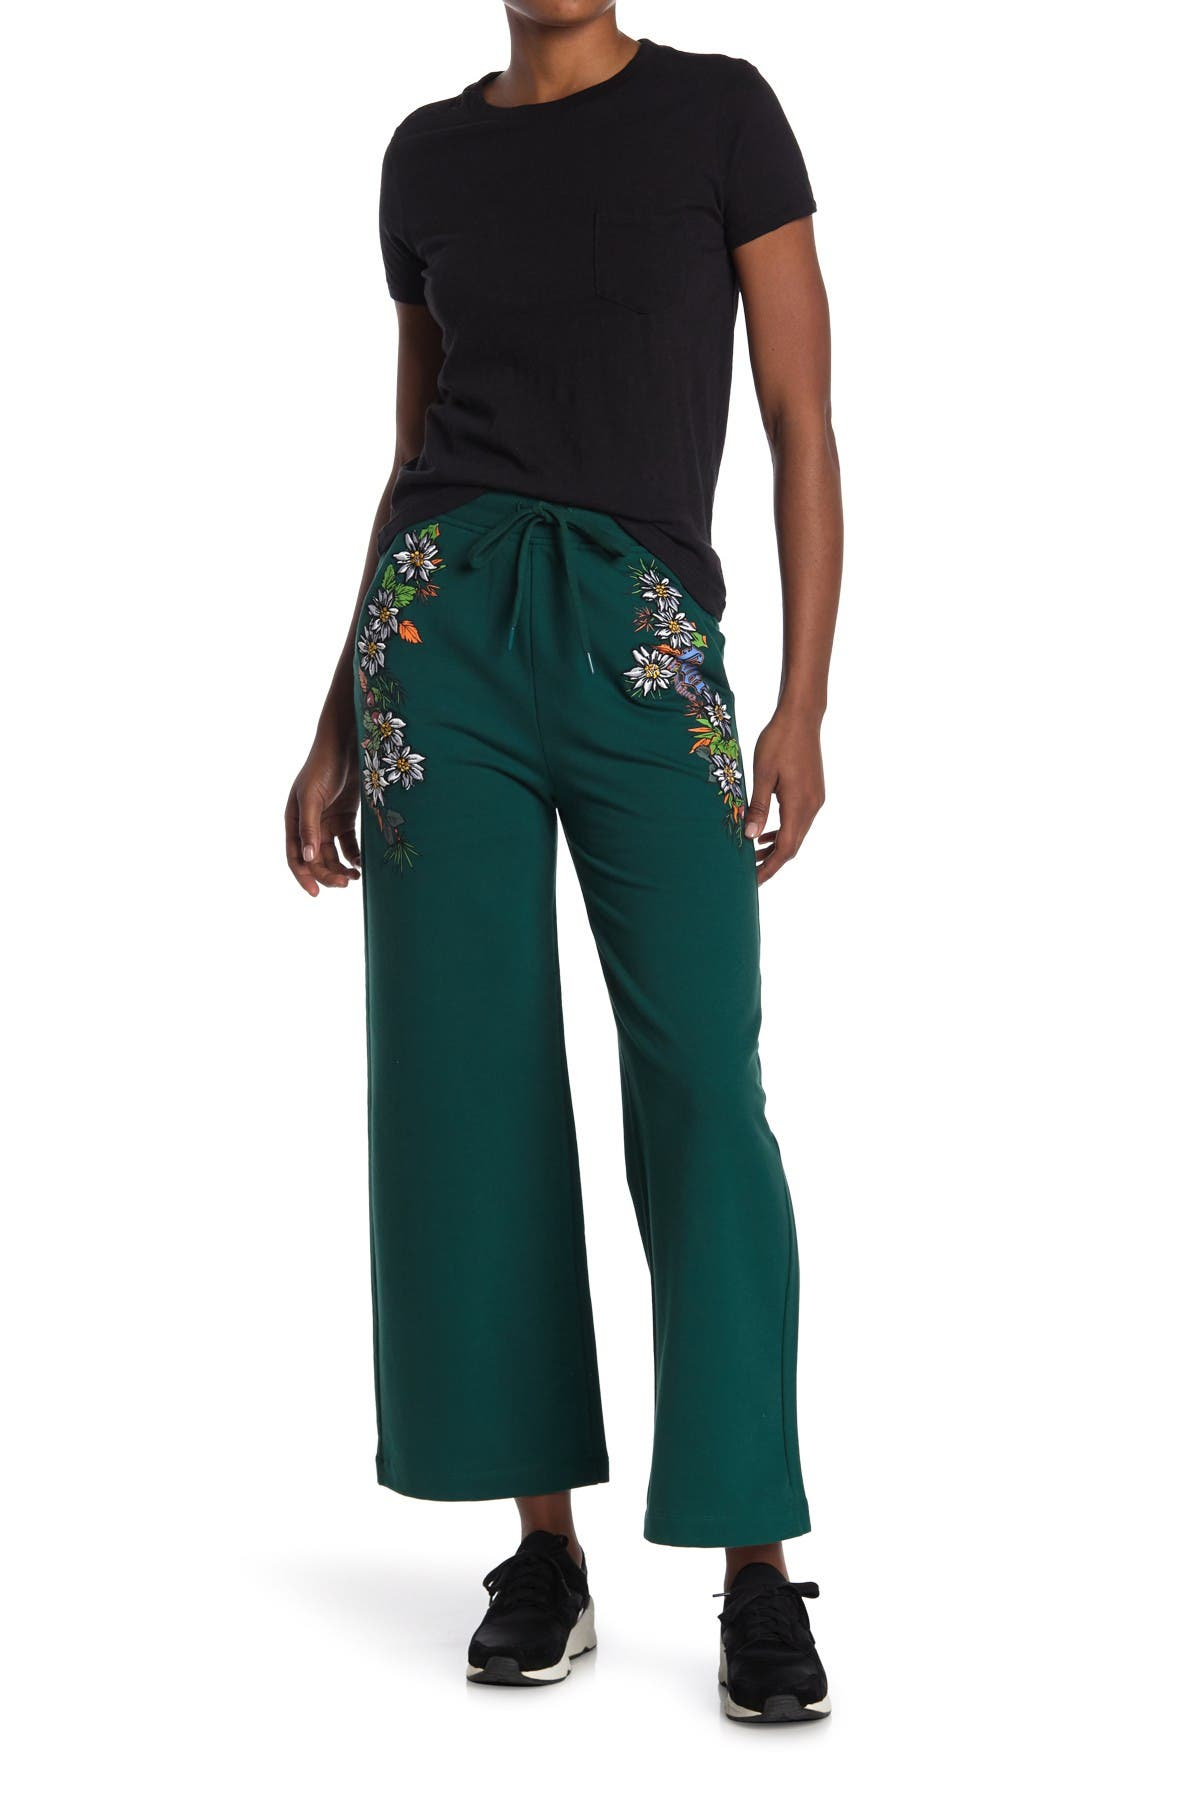 Image of LOVE Moschino Trousers With Embroideries